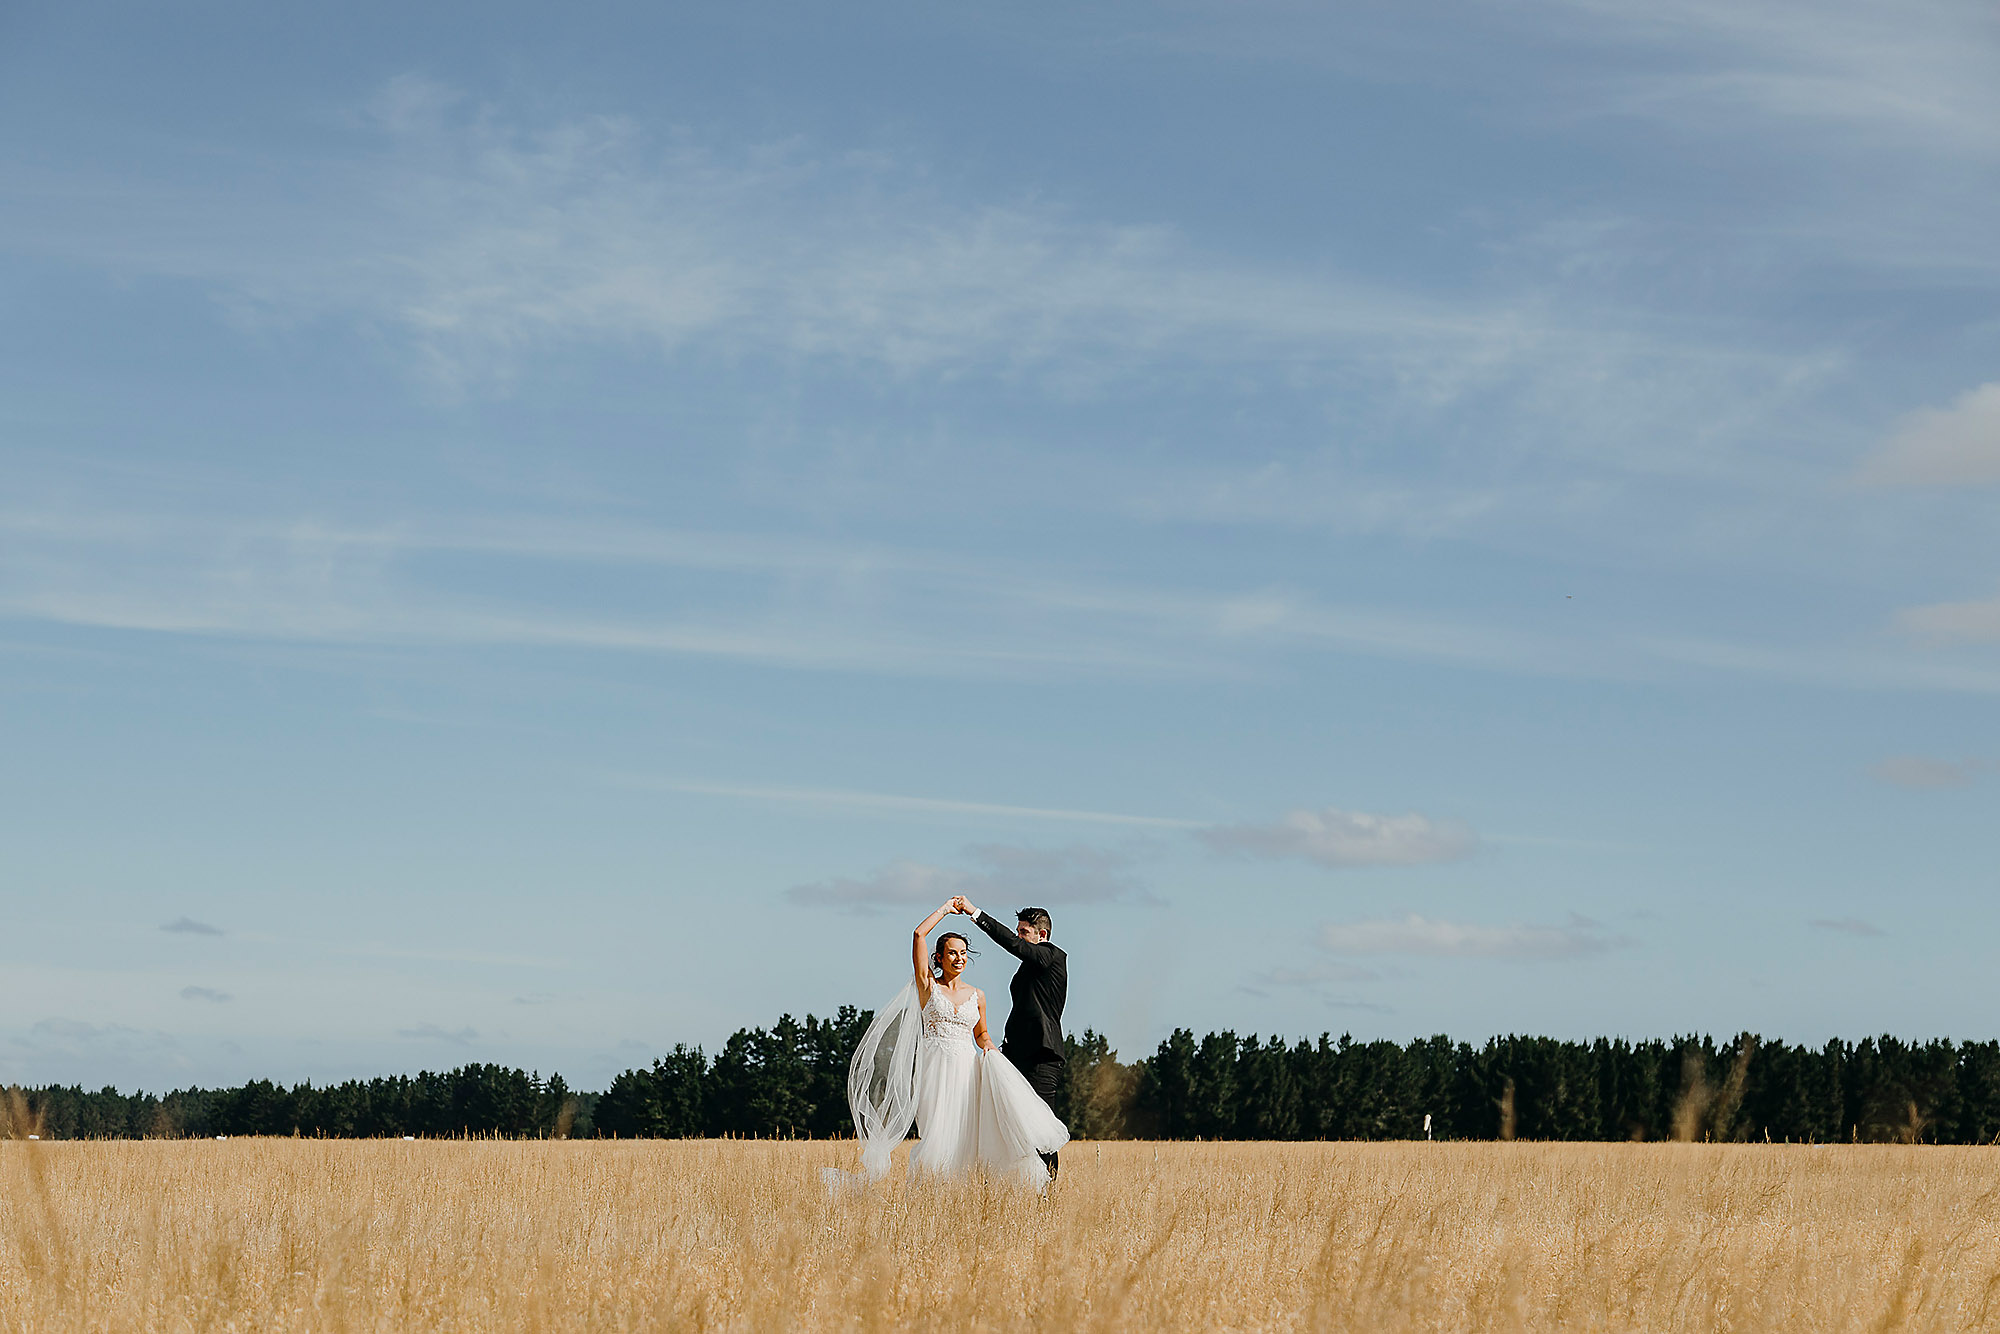 Christchurch Wedding Photographer wedding photo of bride and groom dancing in field at West Melton Christchurch Rebecca Claridge Photography